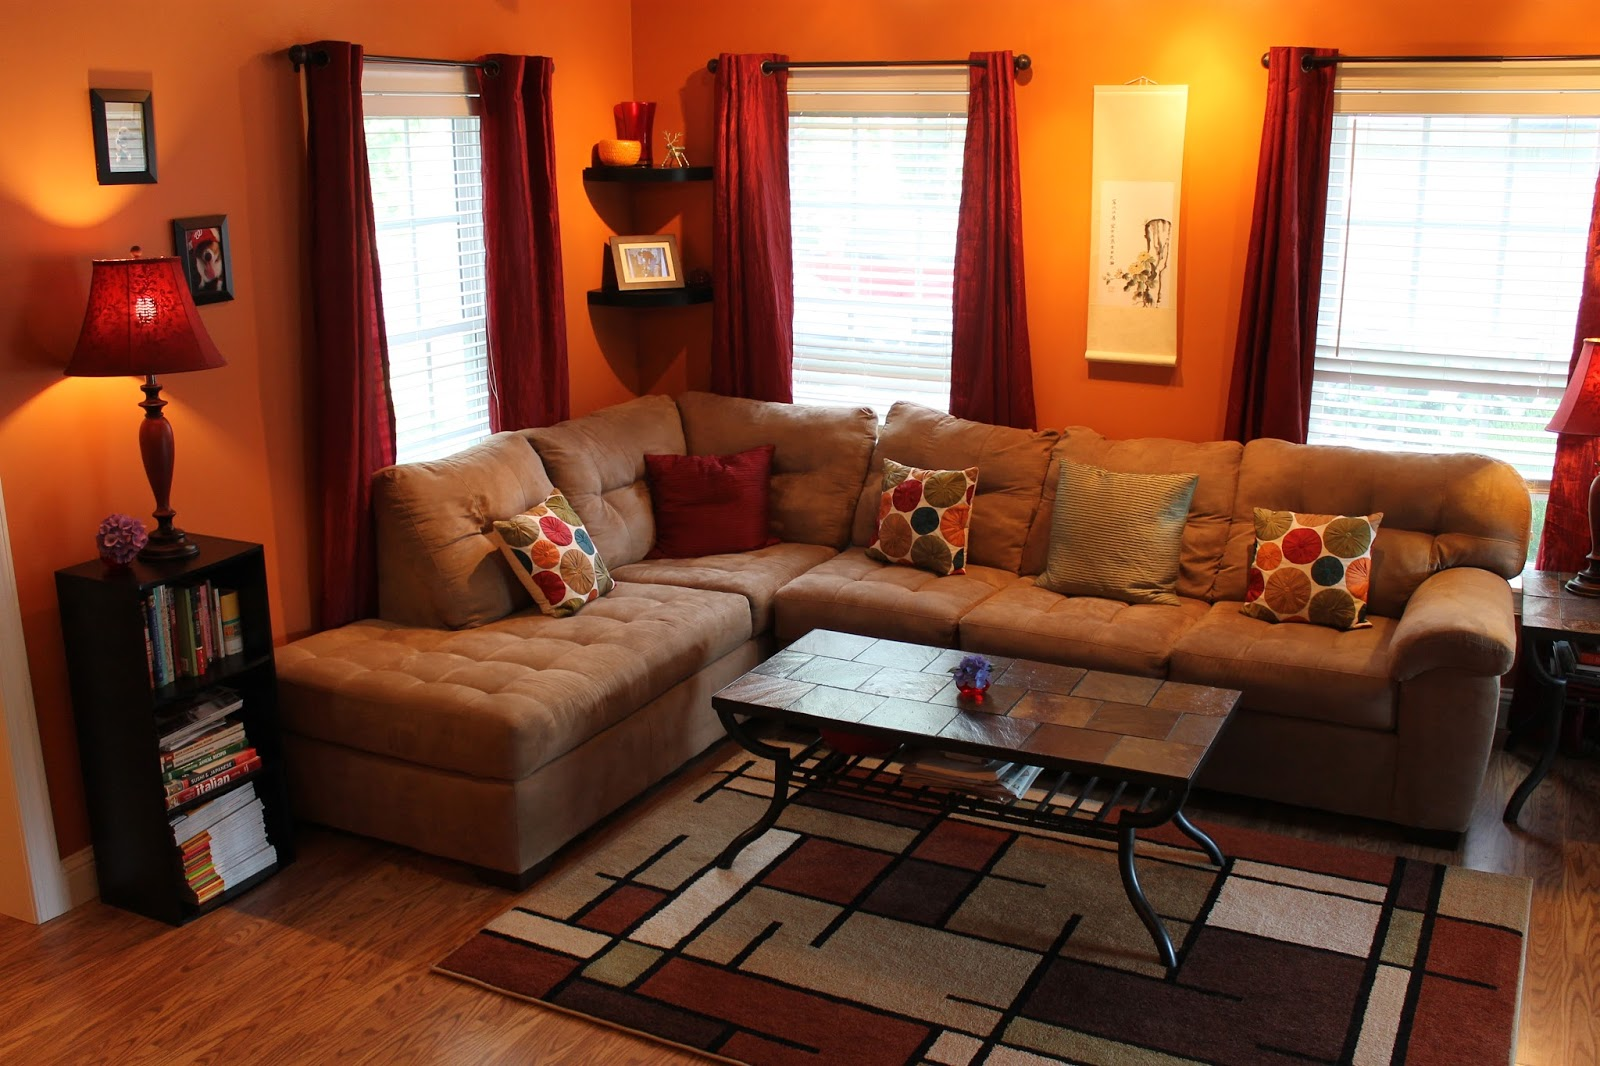 Related What Color Curtains Go With Orange Walls